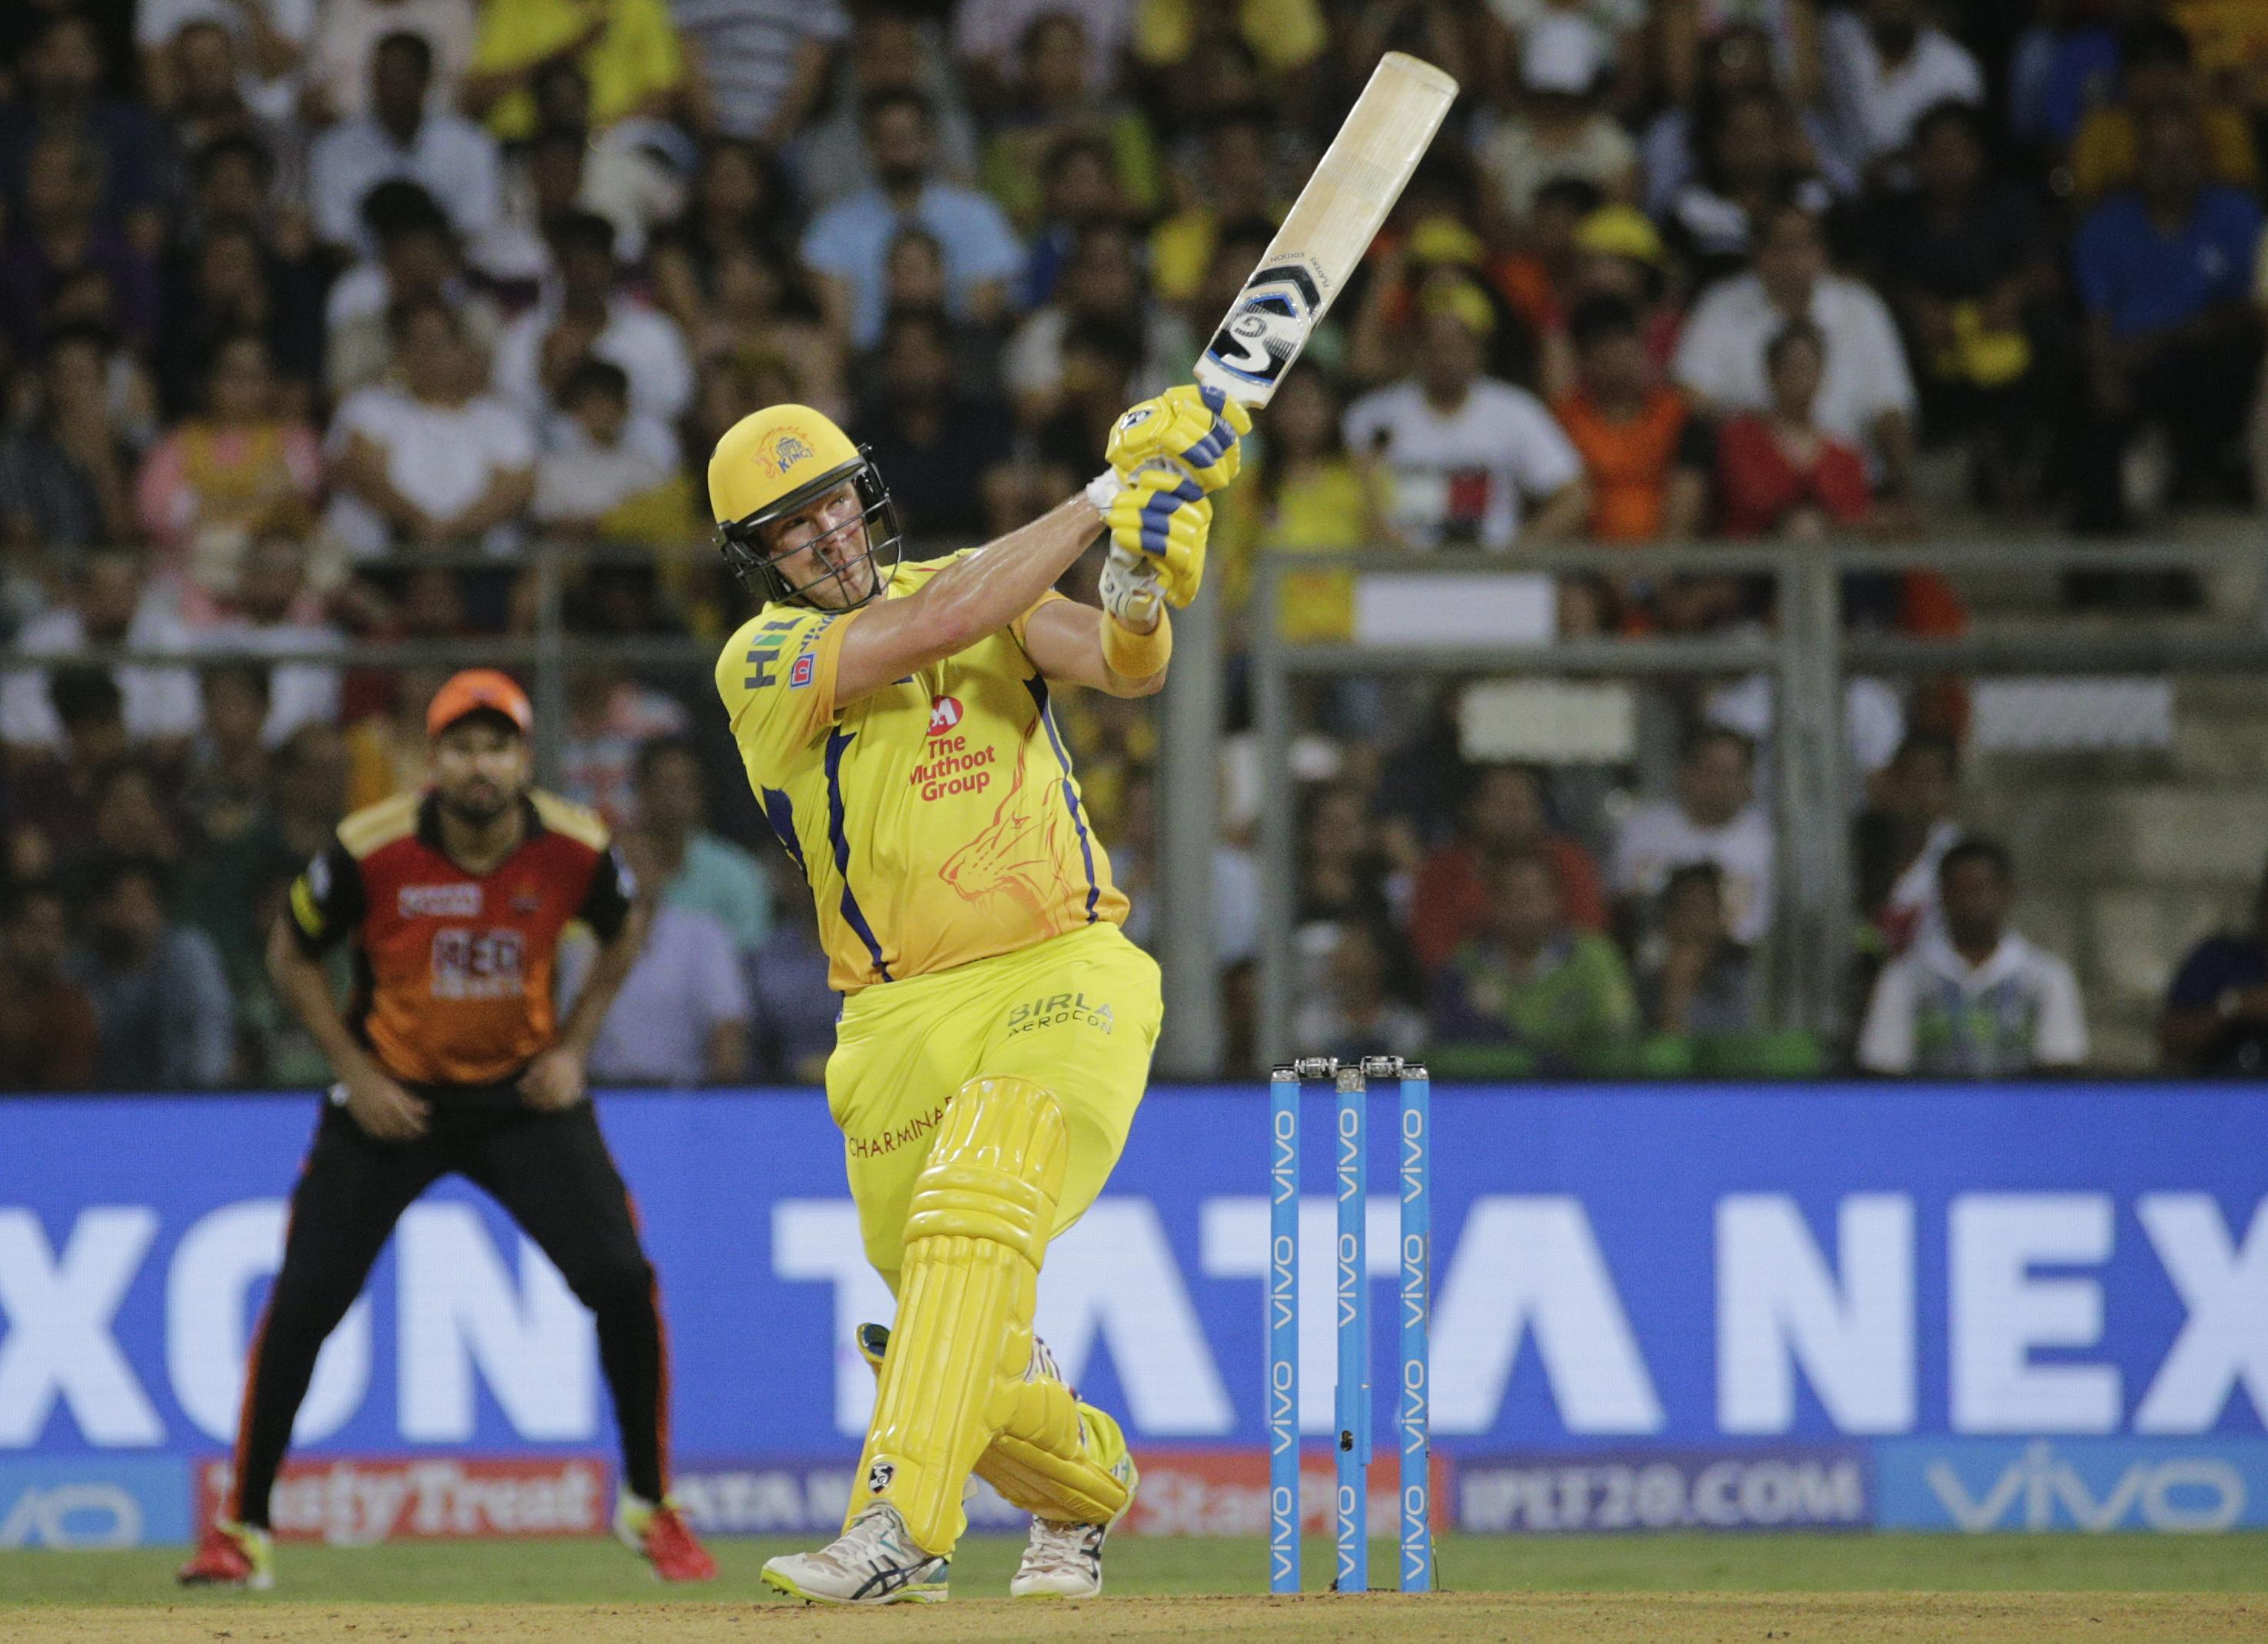 Shane Watson starred in the Indian Premier League final for Chennai Super Kings